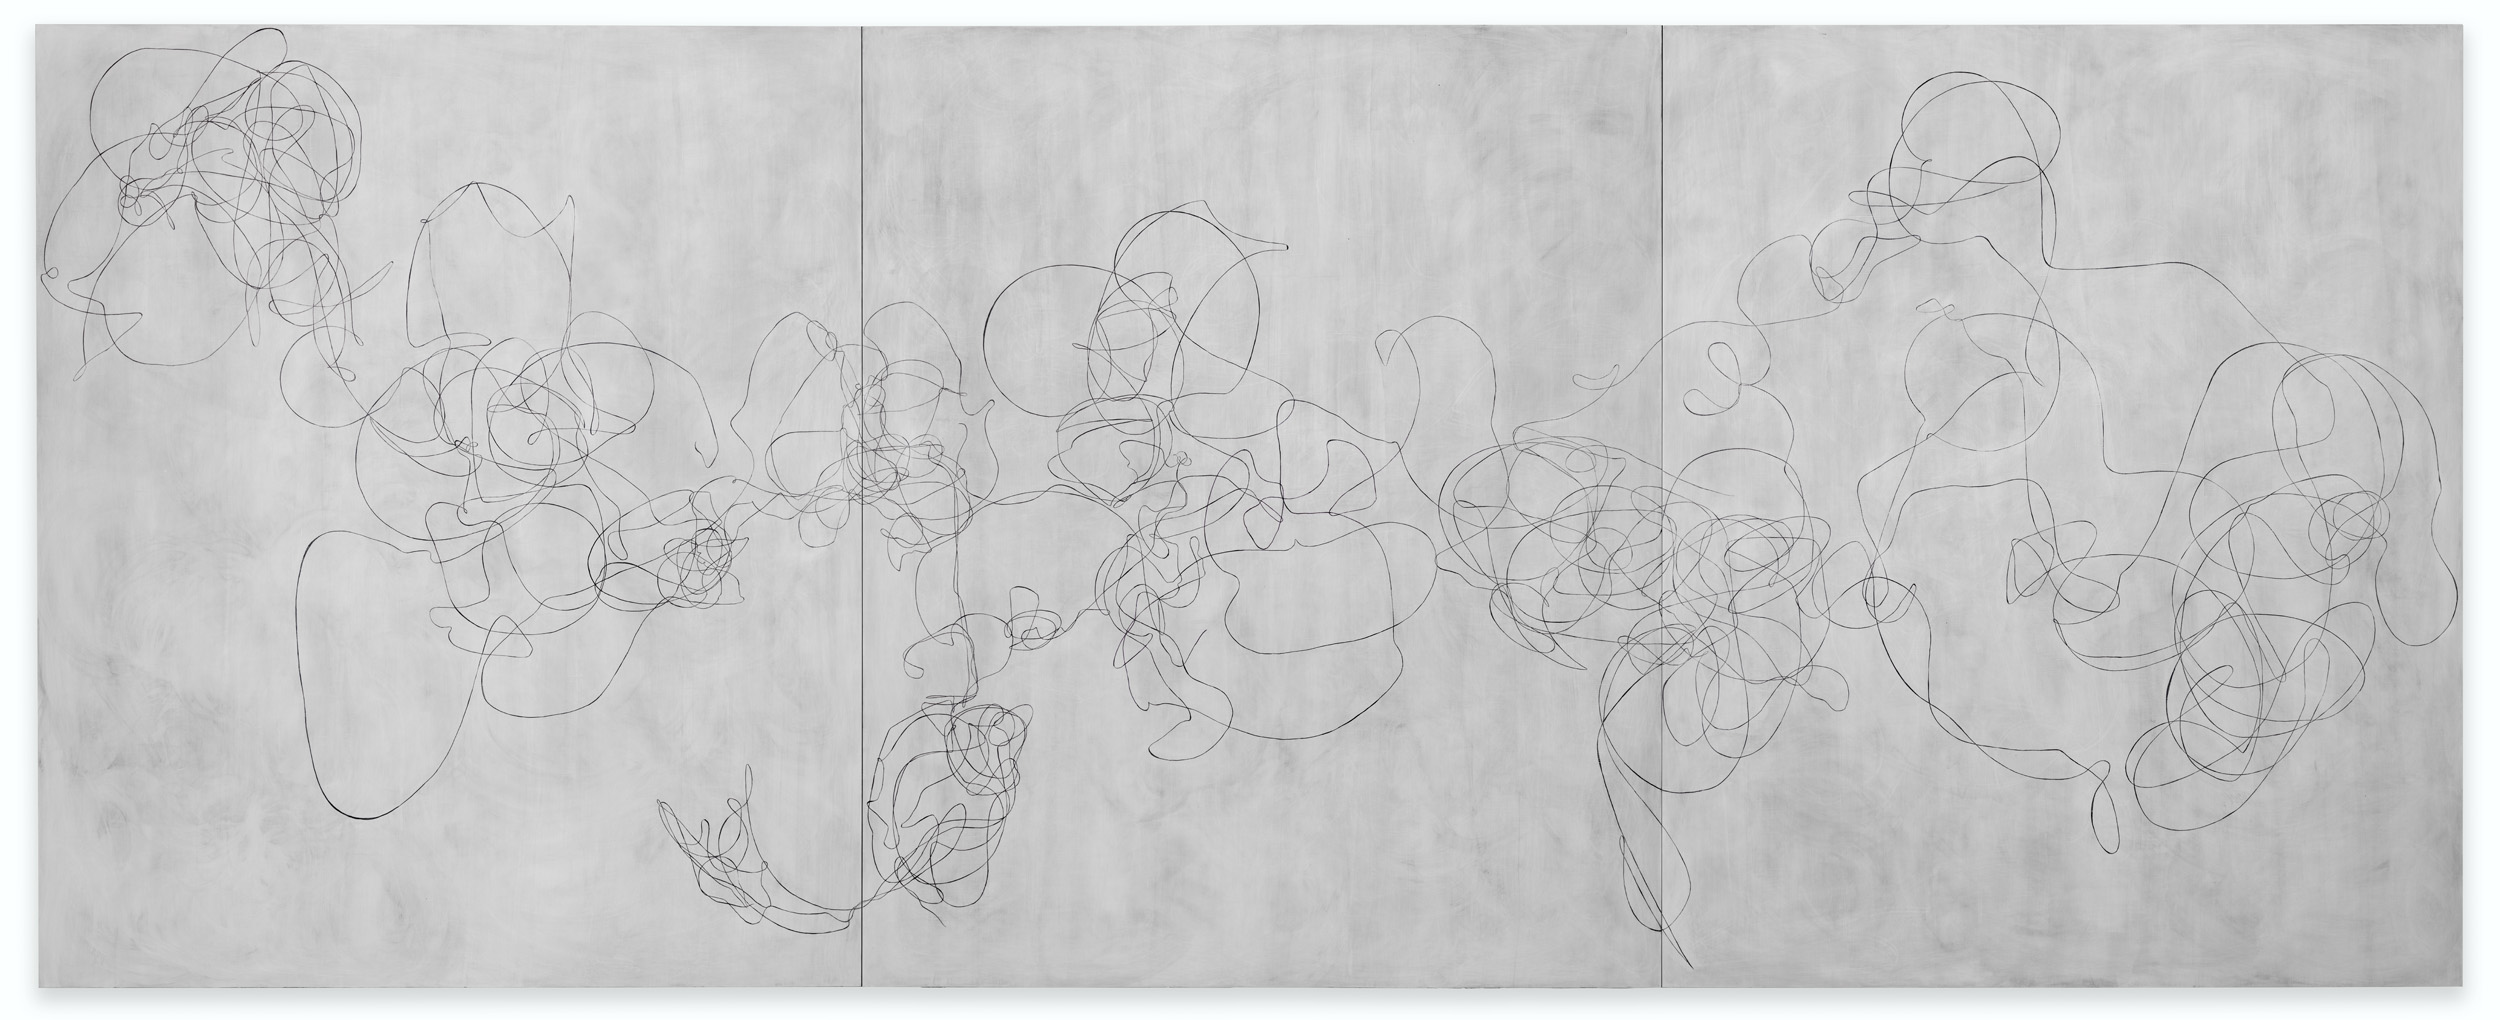 """Elliott Puckette, """"A Love Letter,"""" 2018, gesso, kaolin and ink on dibond, 72 x 180 inches, 182.9 x 457.2 cm. Courtesy of the artist and Paul Kasmin Gallery. Photo by Diego Flores."""